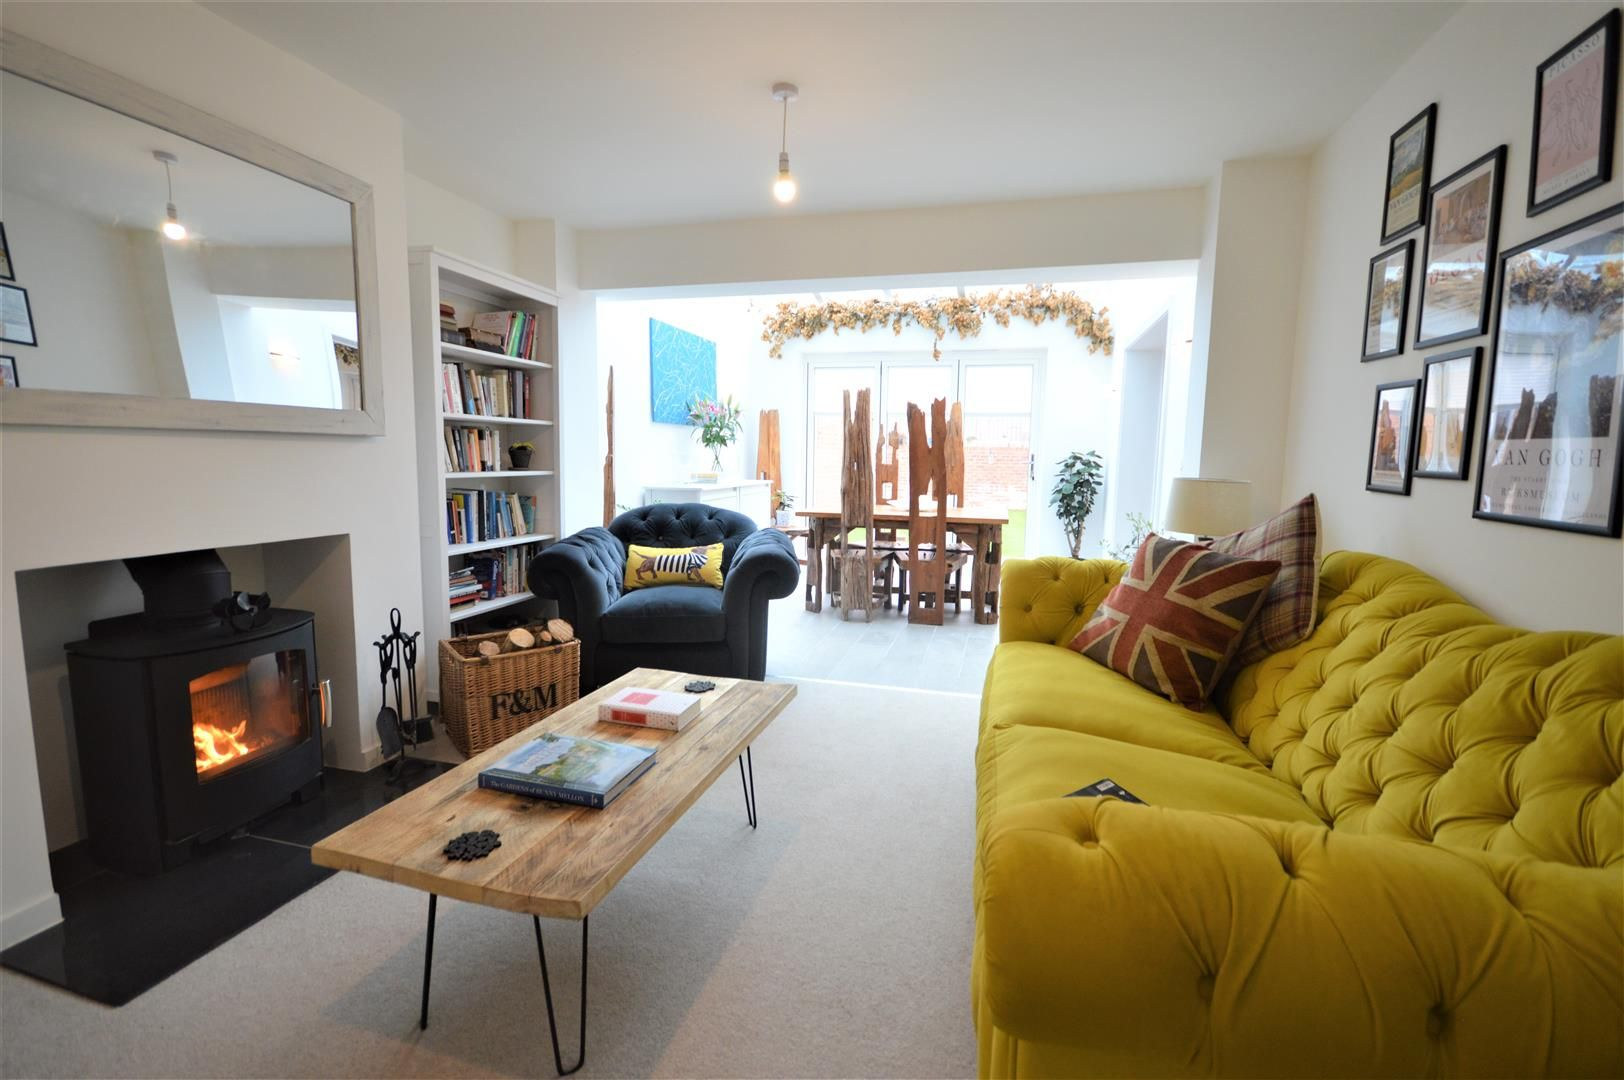 5 bed detached for sale in Weobley  - Property Image 2